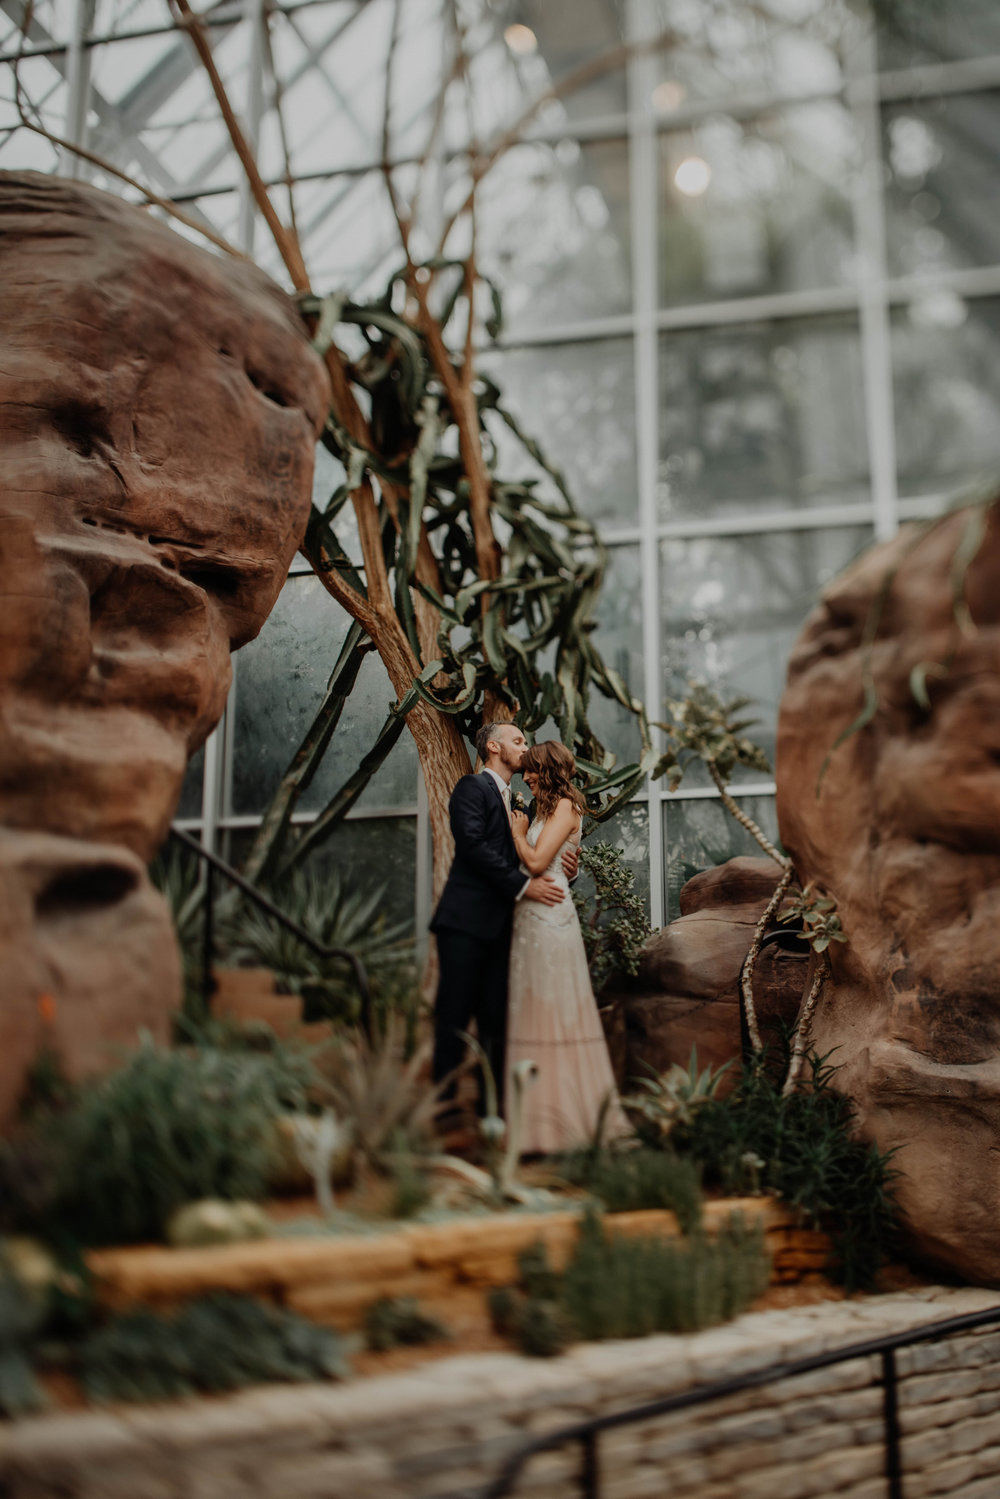 franklin park conservatory wedding columbus ohio wedding photographer grace e jones photography53.jpg